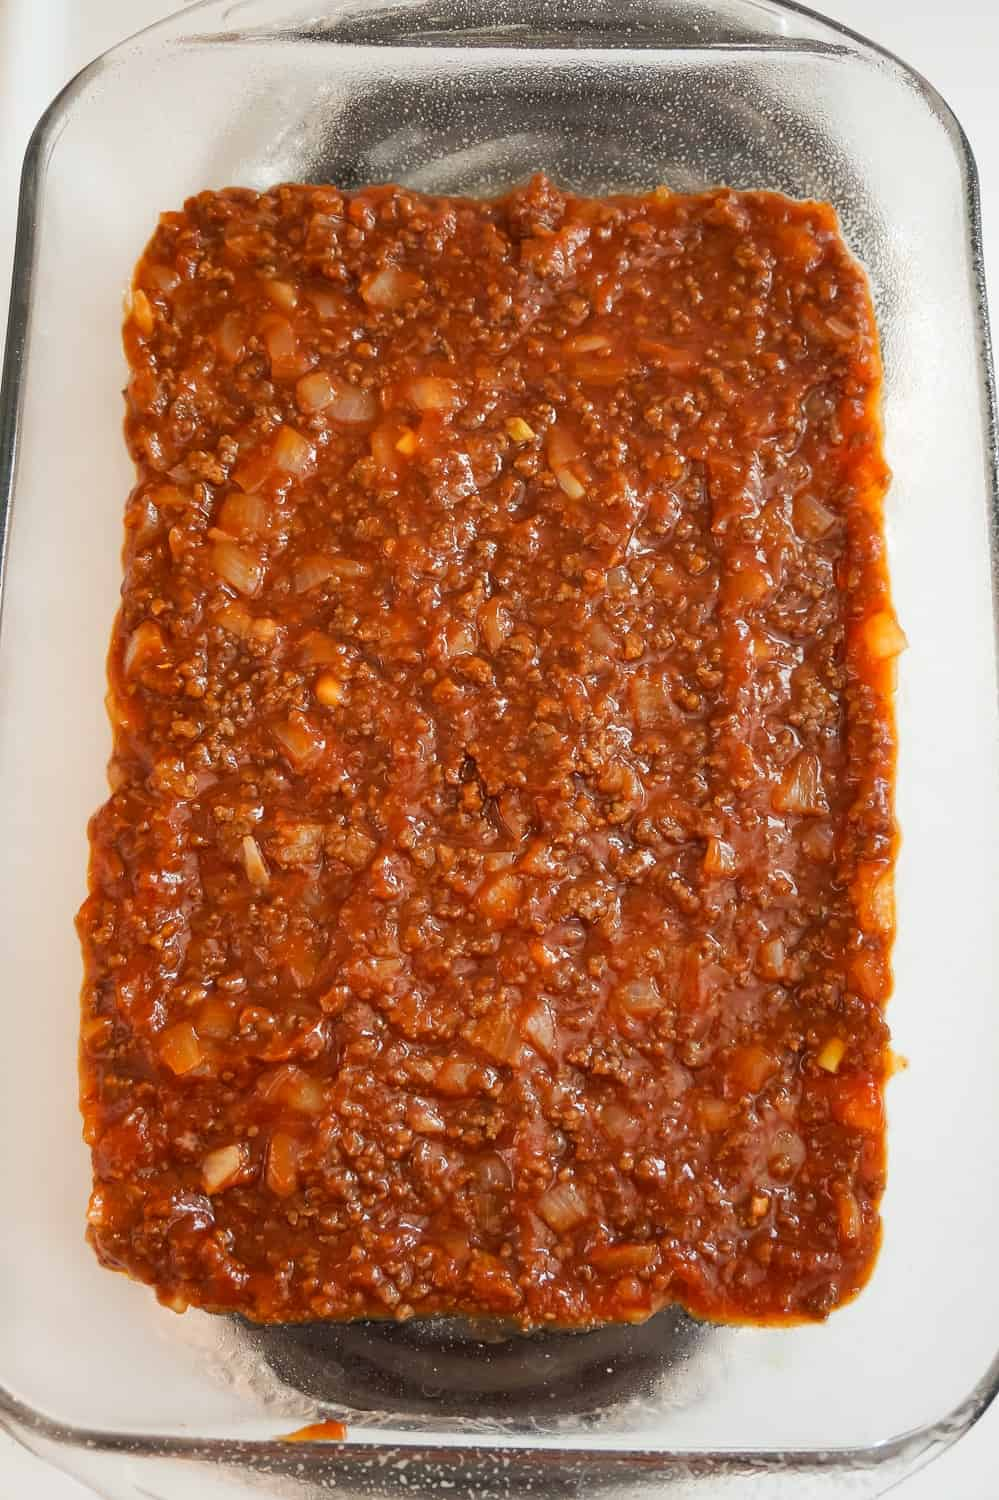 sloppy joe mixture in the bottom of a baking dish